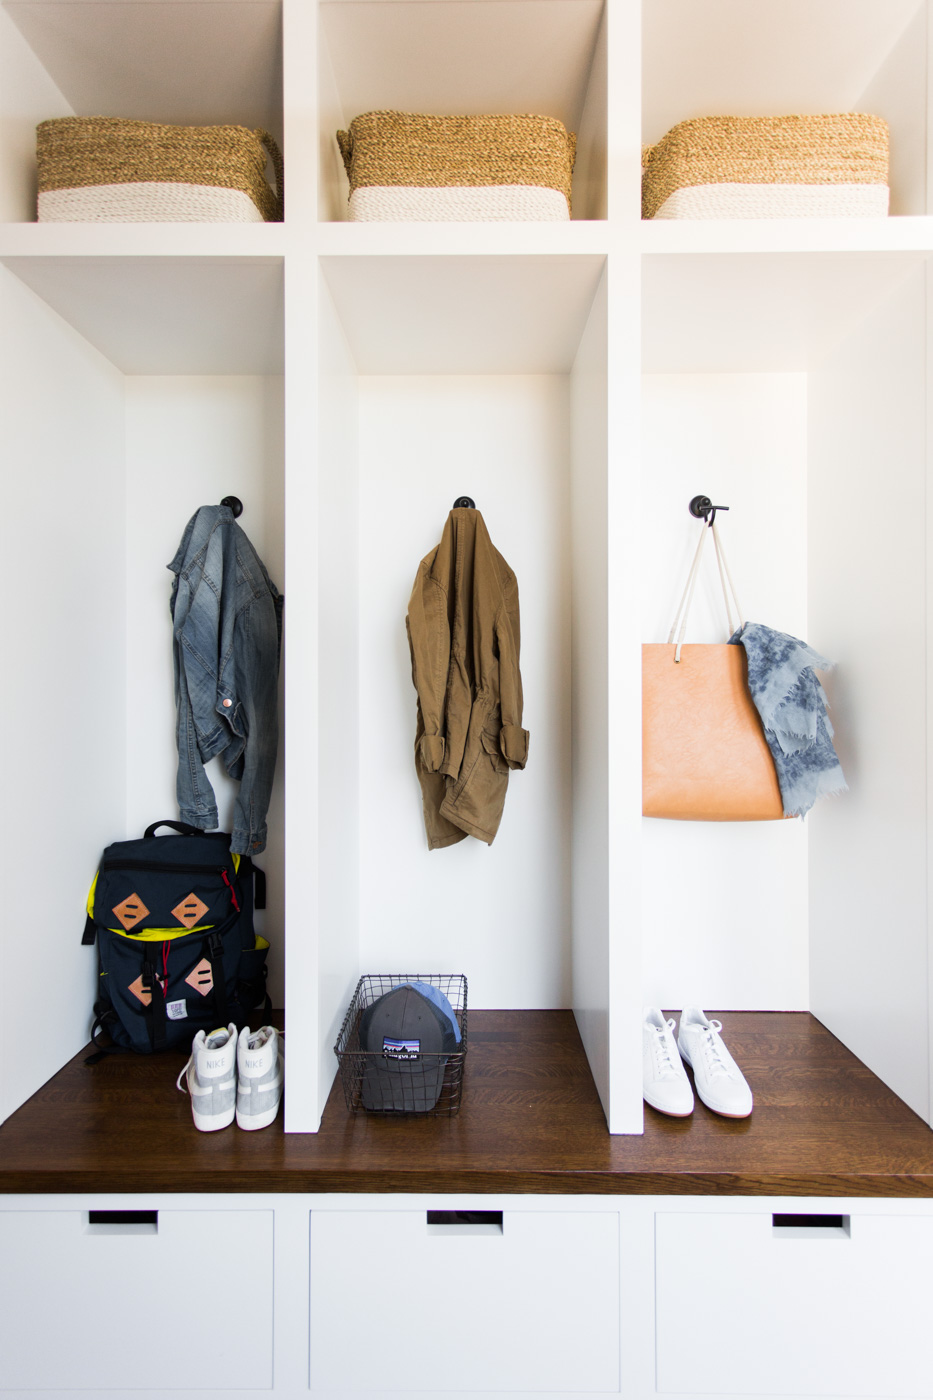 Details of built in cubbies in mudroom